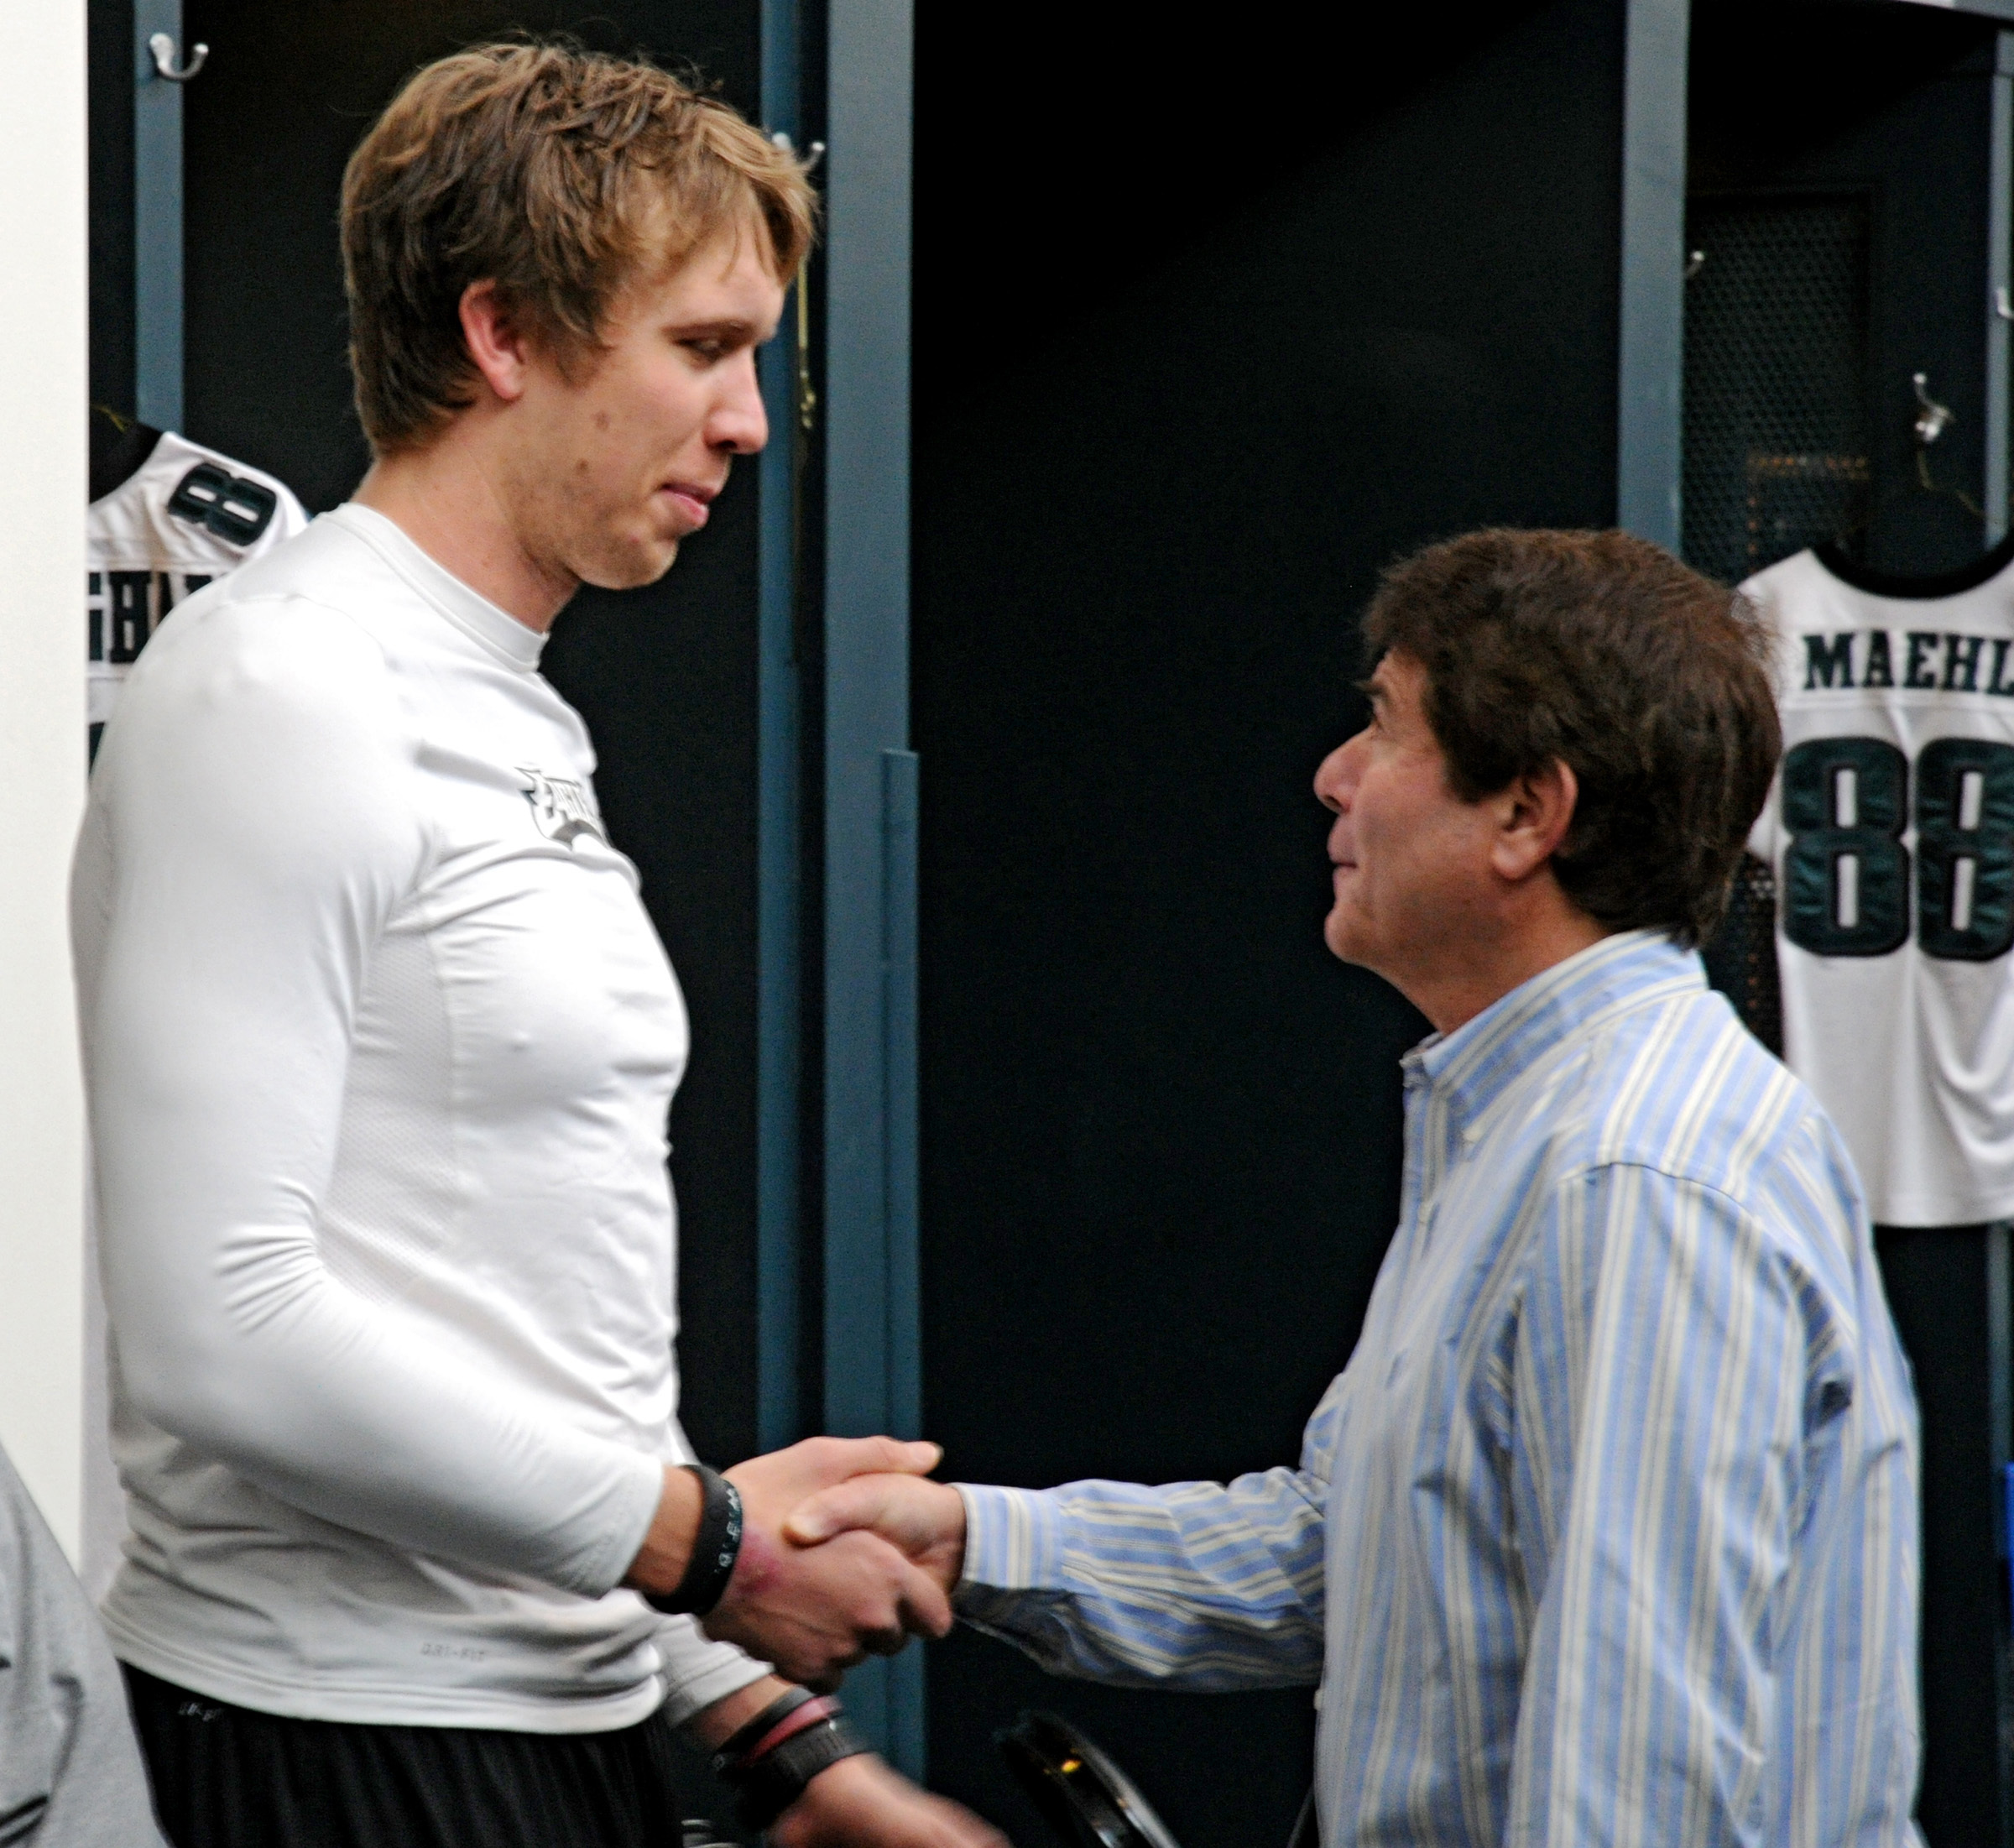 Merrill Reese greets Eagles quarterback Nick Foles (left) in the locker room in January 2014.